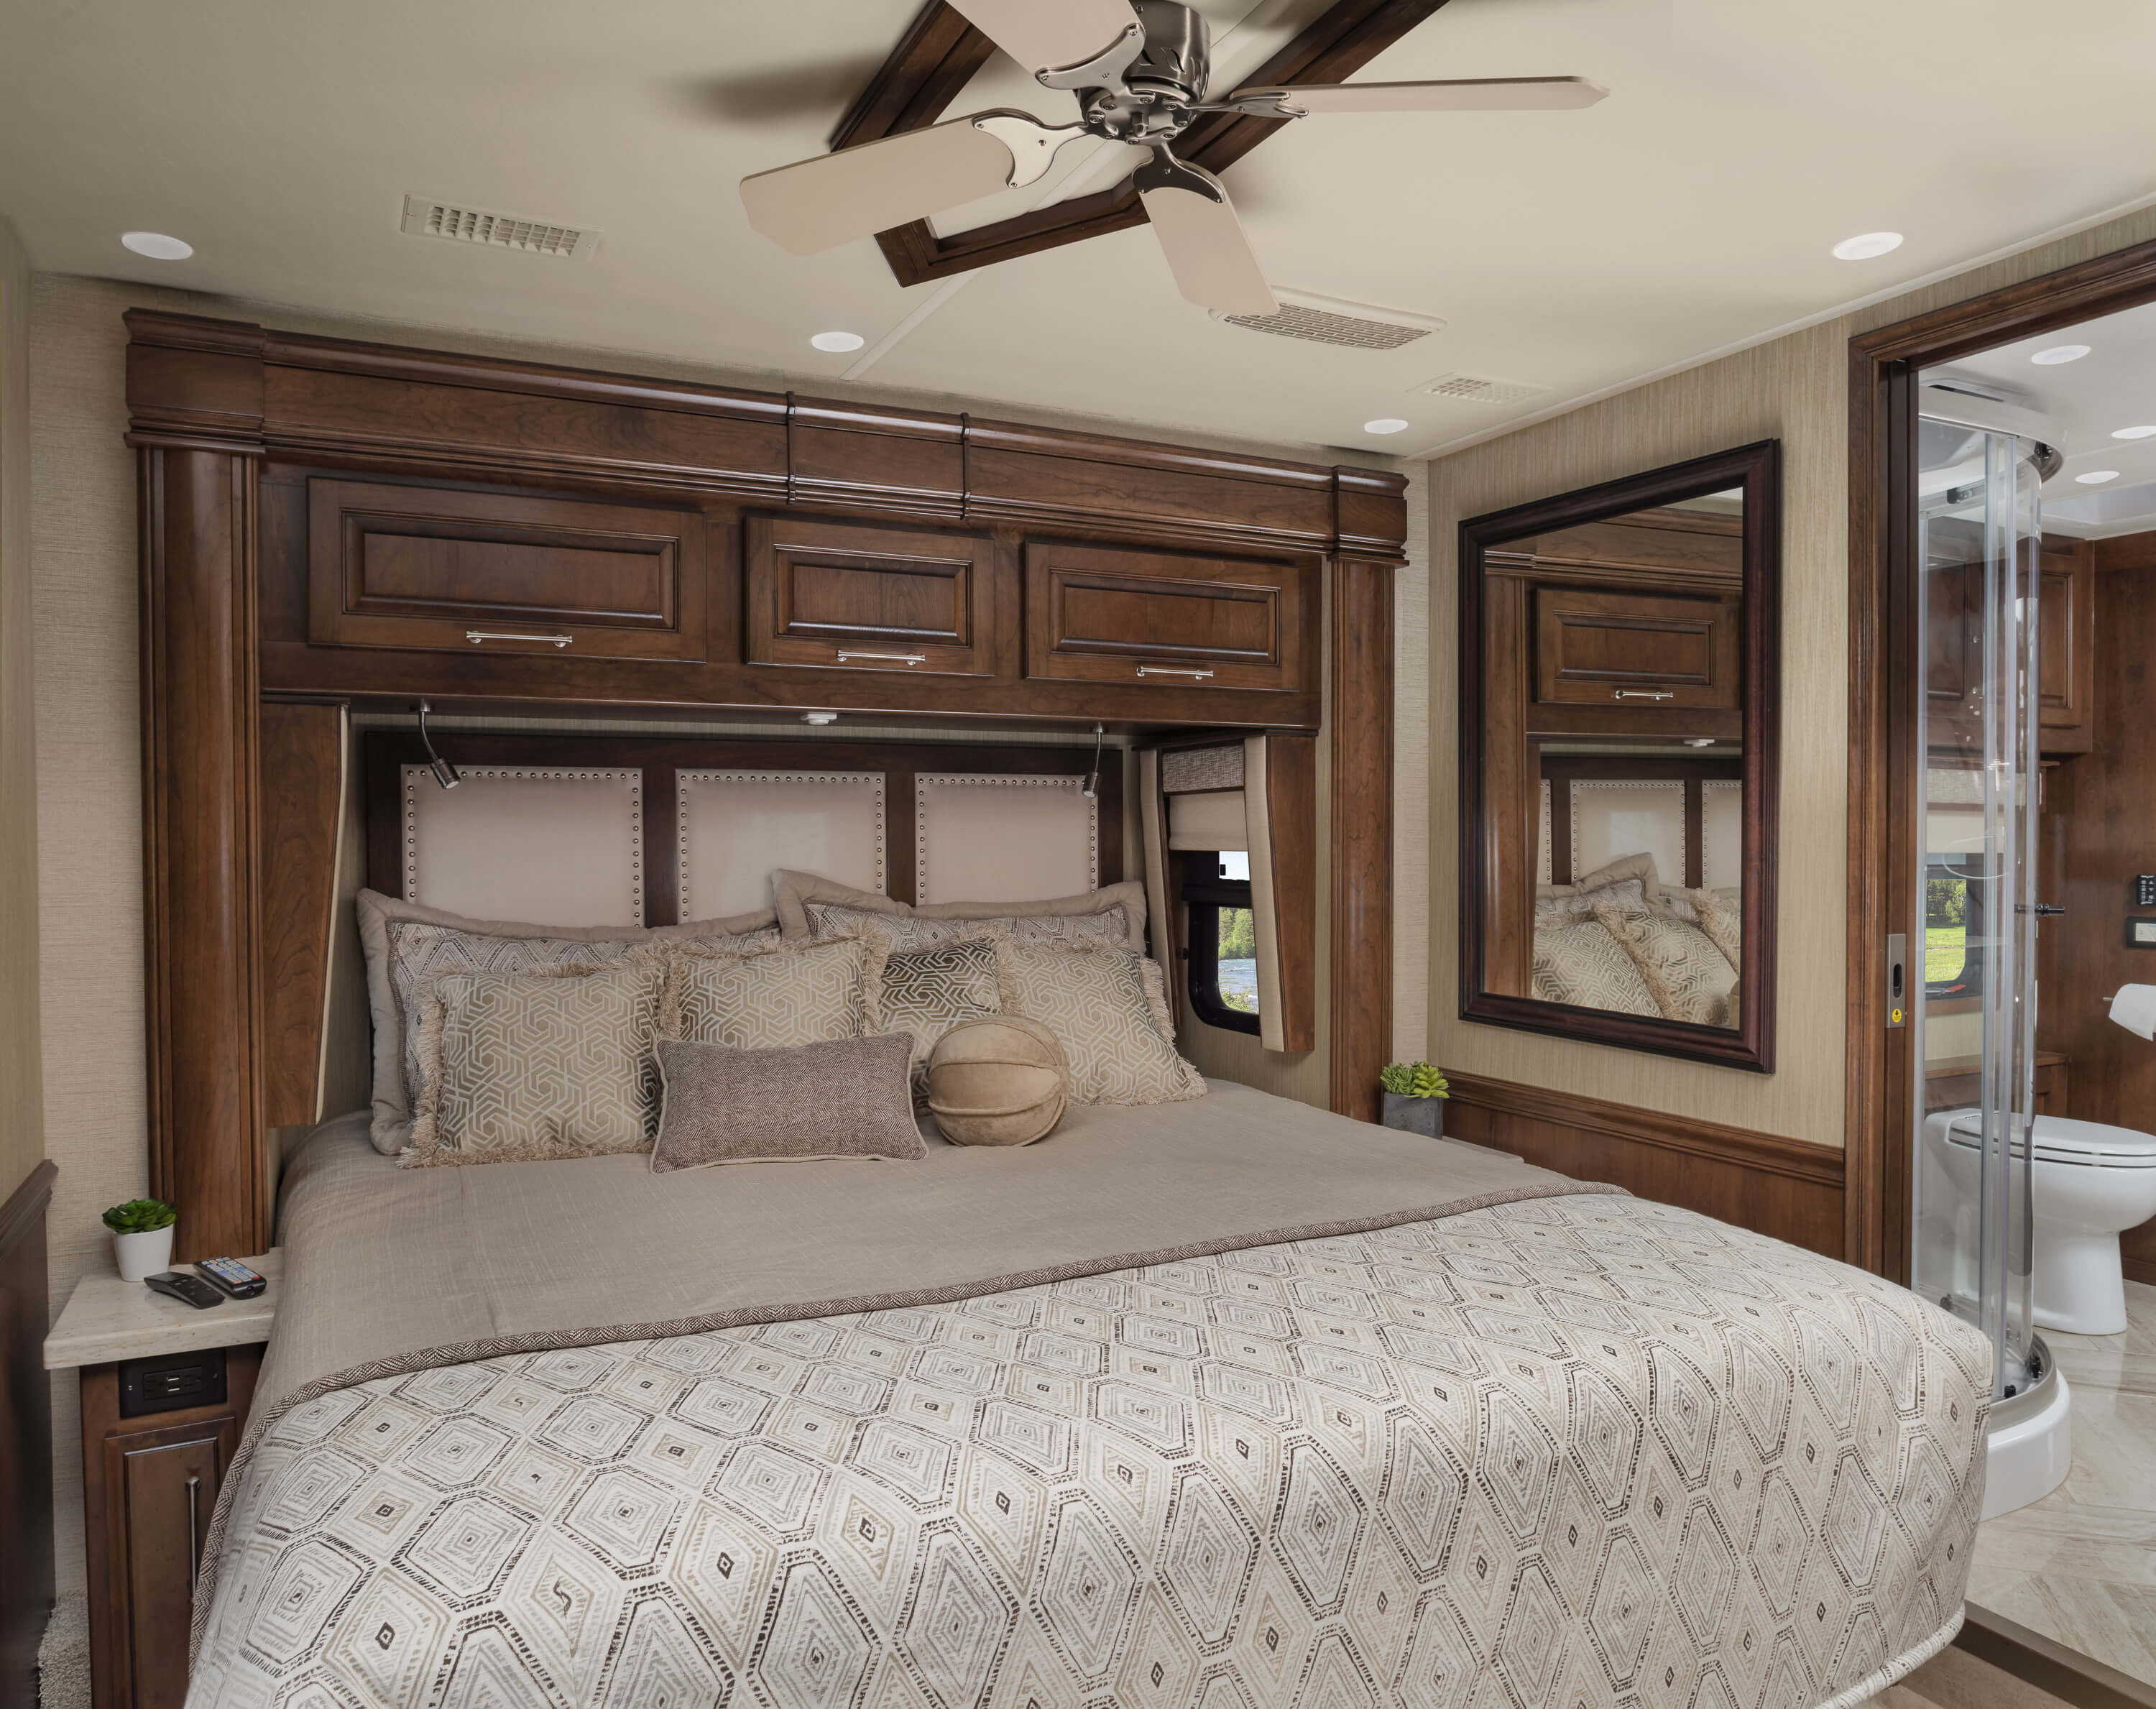 The 2019 Aspire Luxury Diesel Class A Motorhome Entegra Coach Esprit Sheet Set Lily King Size 44w Bed Locking System